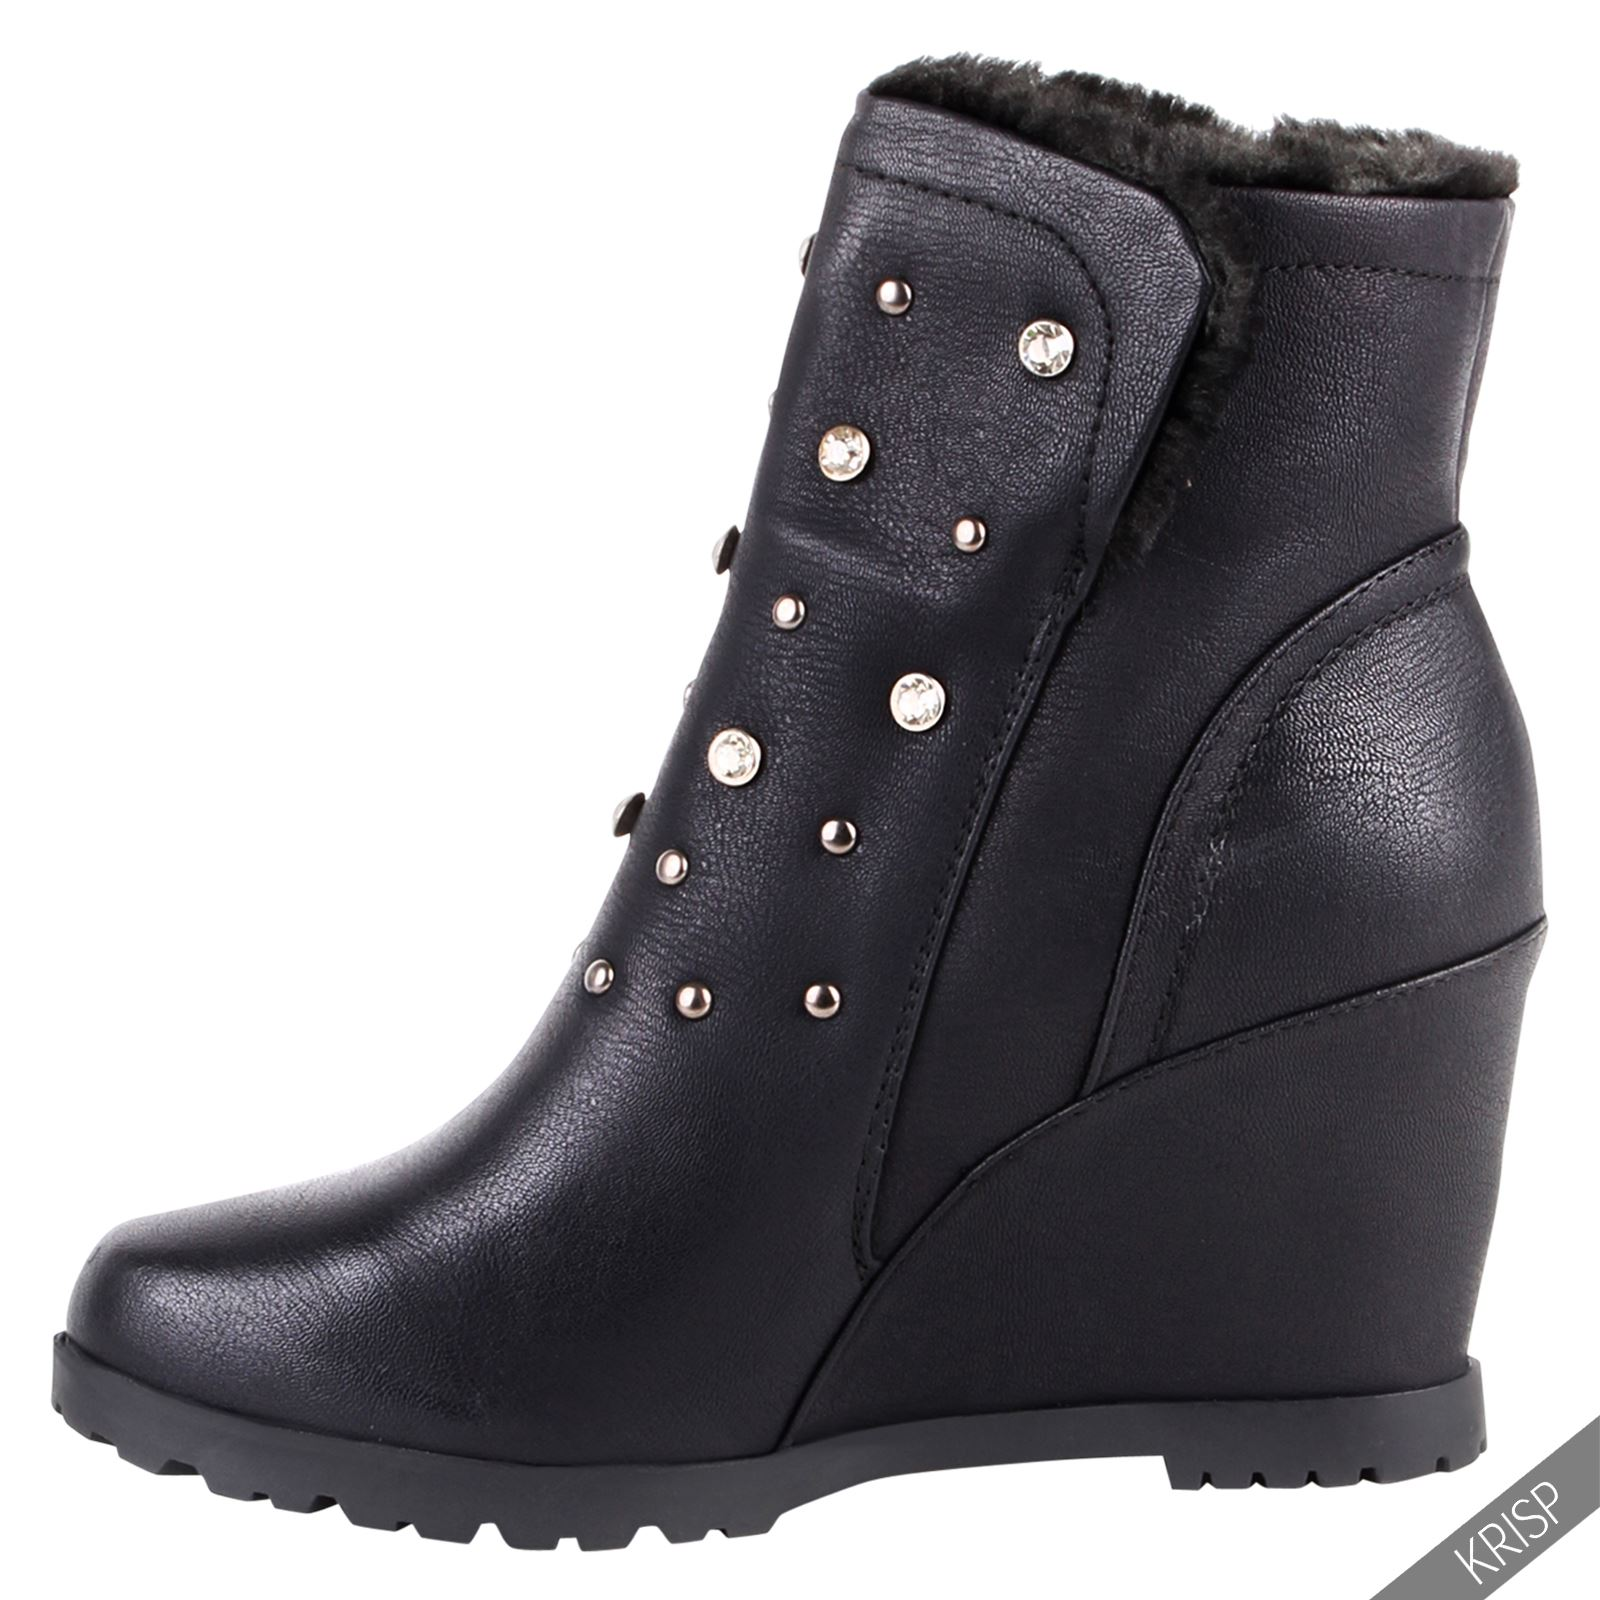 Enjoy free shipping and easy returns every day at Kohl's. Find great deals on Womens Wedge Boots at Kohl's today!